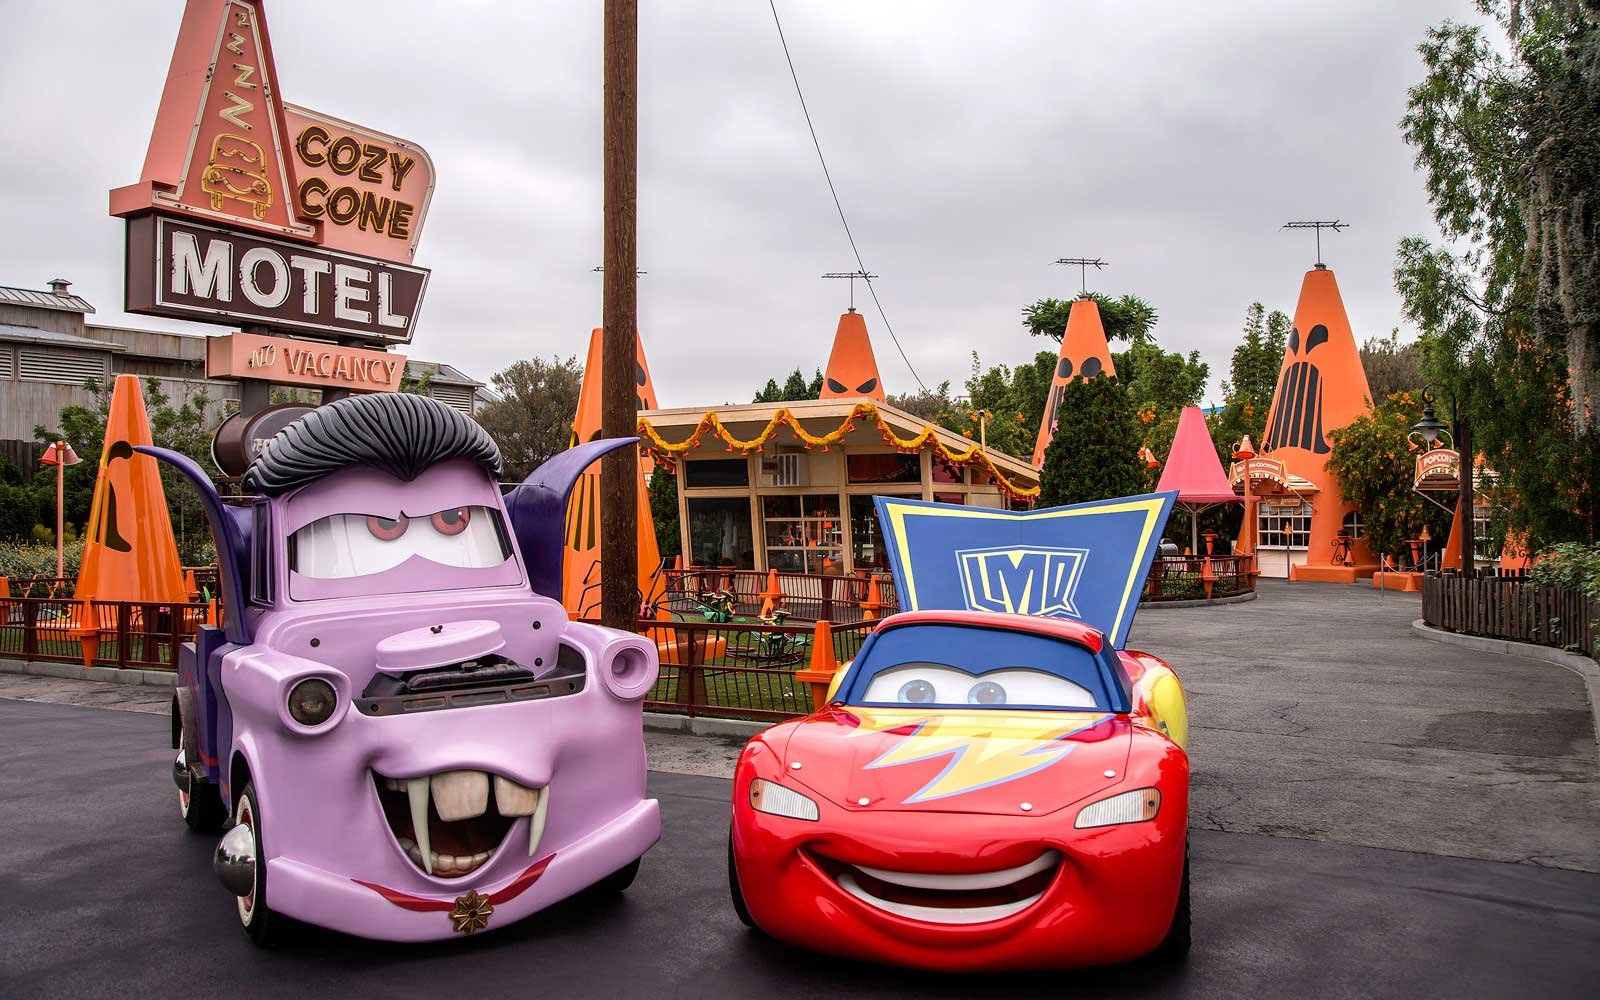 Park Auto Mall >> The Disneyland Halloween Transformation Has All Kinds of New Surprises | Travel + Leisure